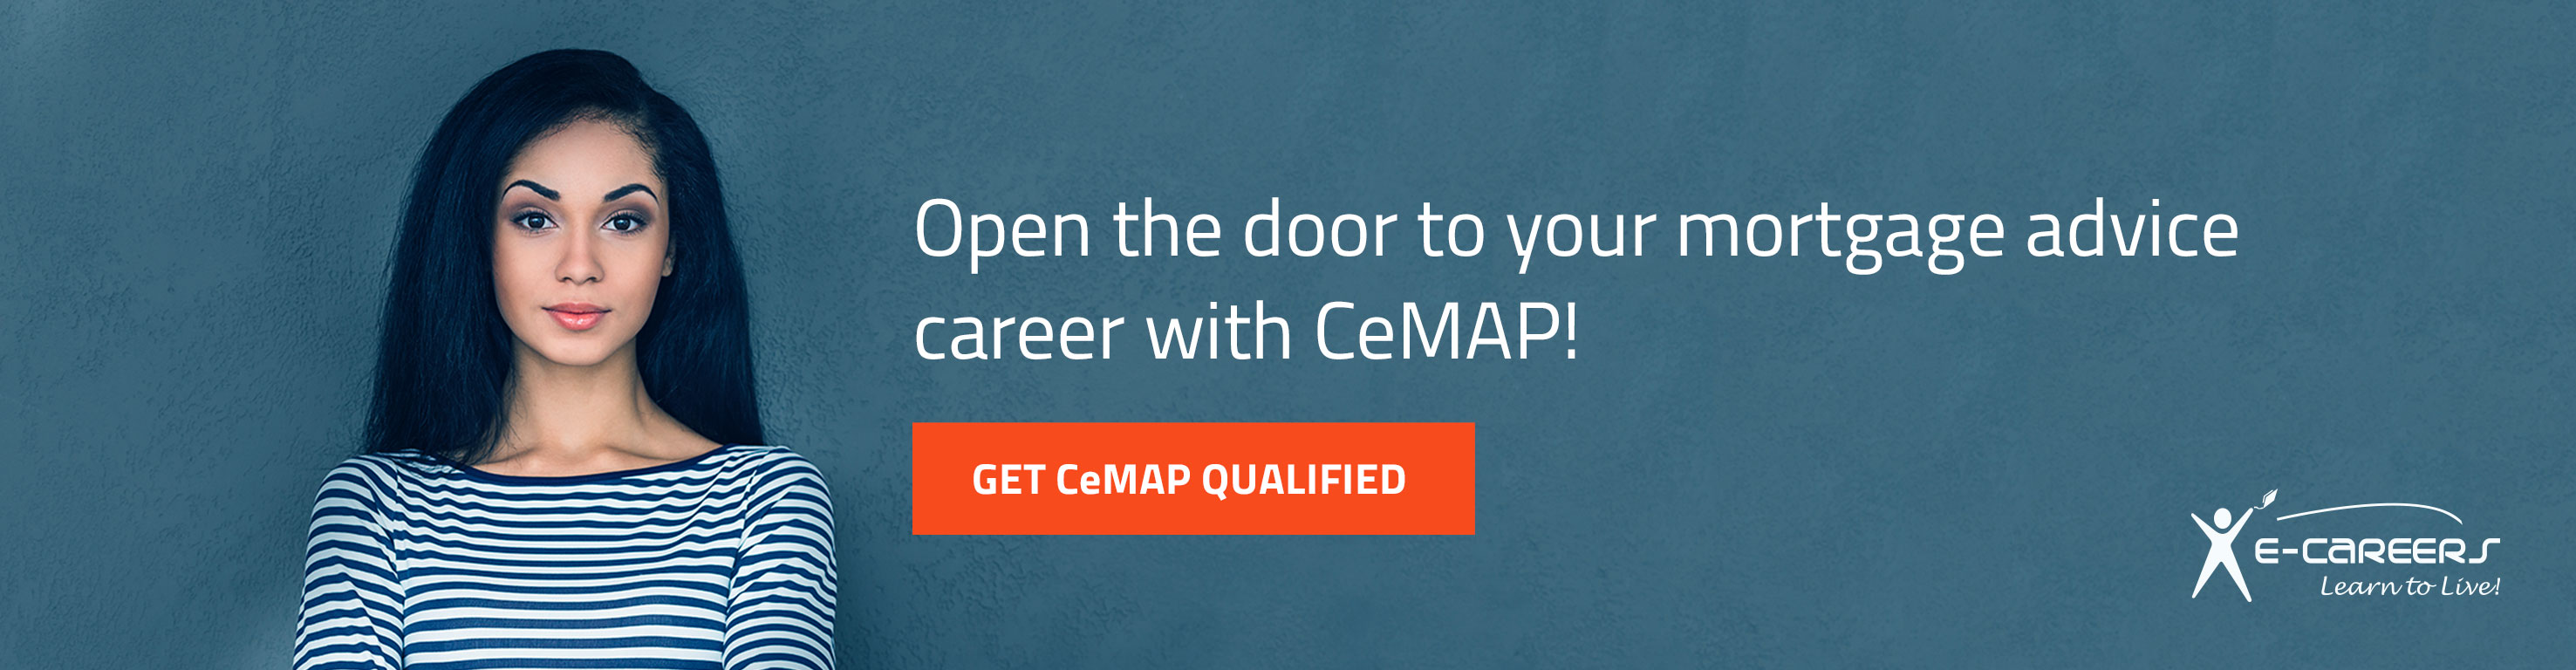 CeMAP